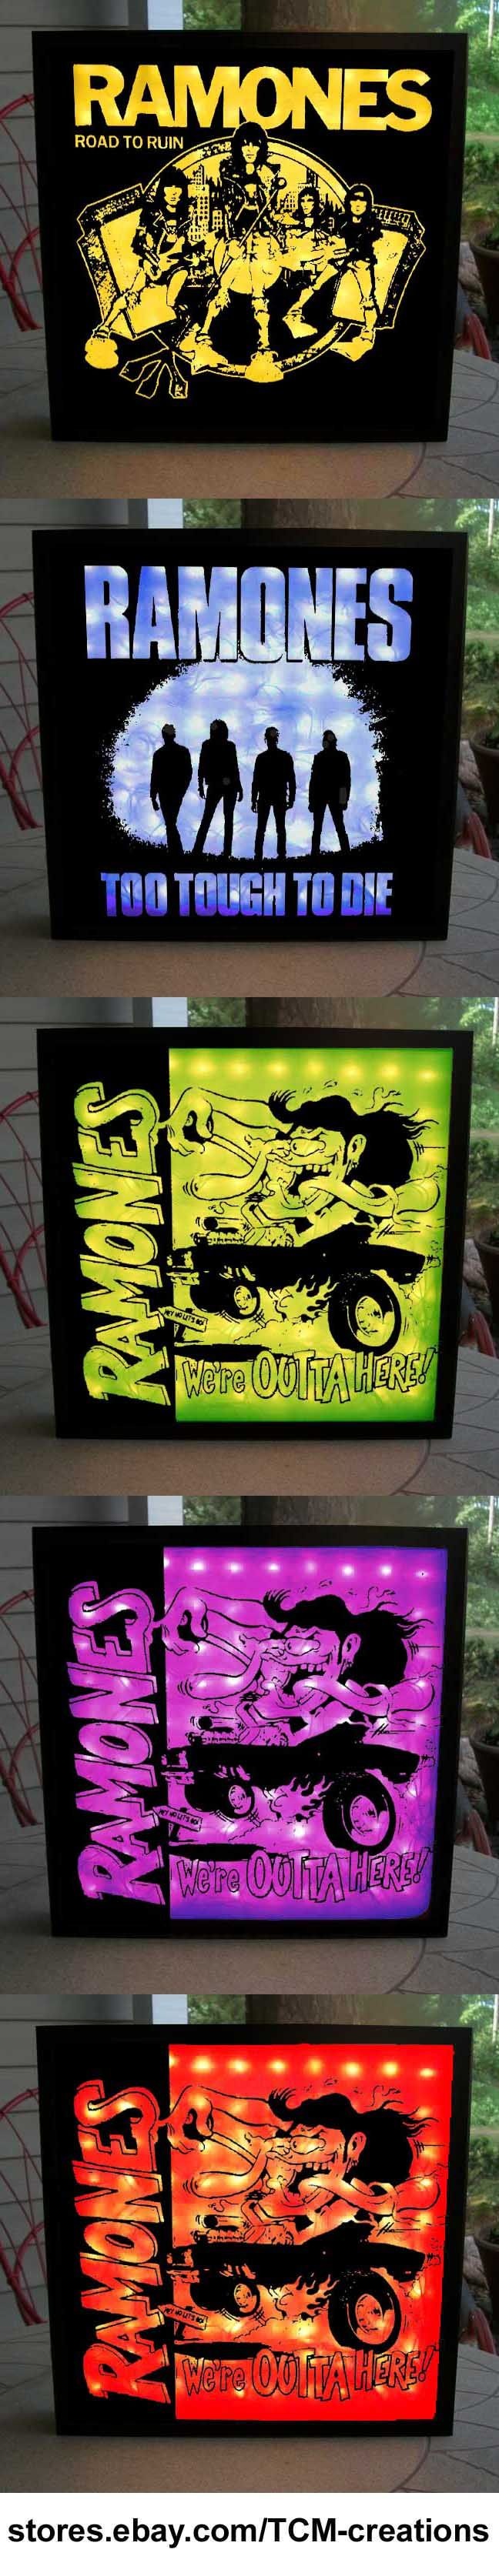 Ramones Shadow Boxes with LED lighting. Johnny Ramone, Joey Ramone, Tommy Ramone, Dee Dee Ramone, Ramones, Leave Home, Rocket To Russia, Road To Ruin, End Of The Century, Pleasant Dreams, Subterranean Jungle, Too Tough To Die, Animal Boy, Halfway To Sanity, Brain Drain, Mondo Bizaaro, Acid Eaters, Adios Amigos.